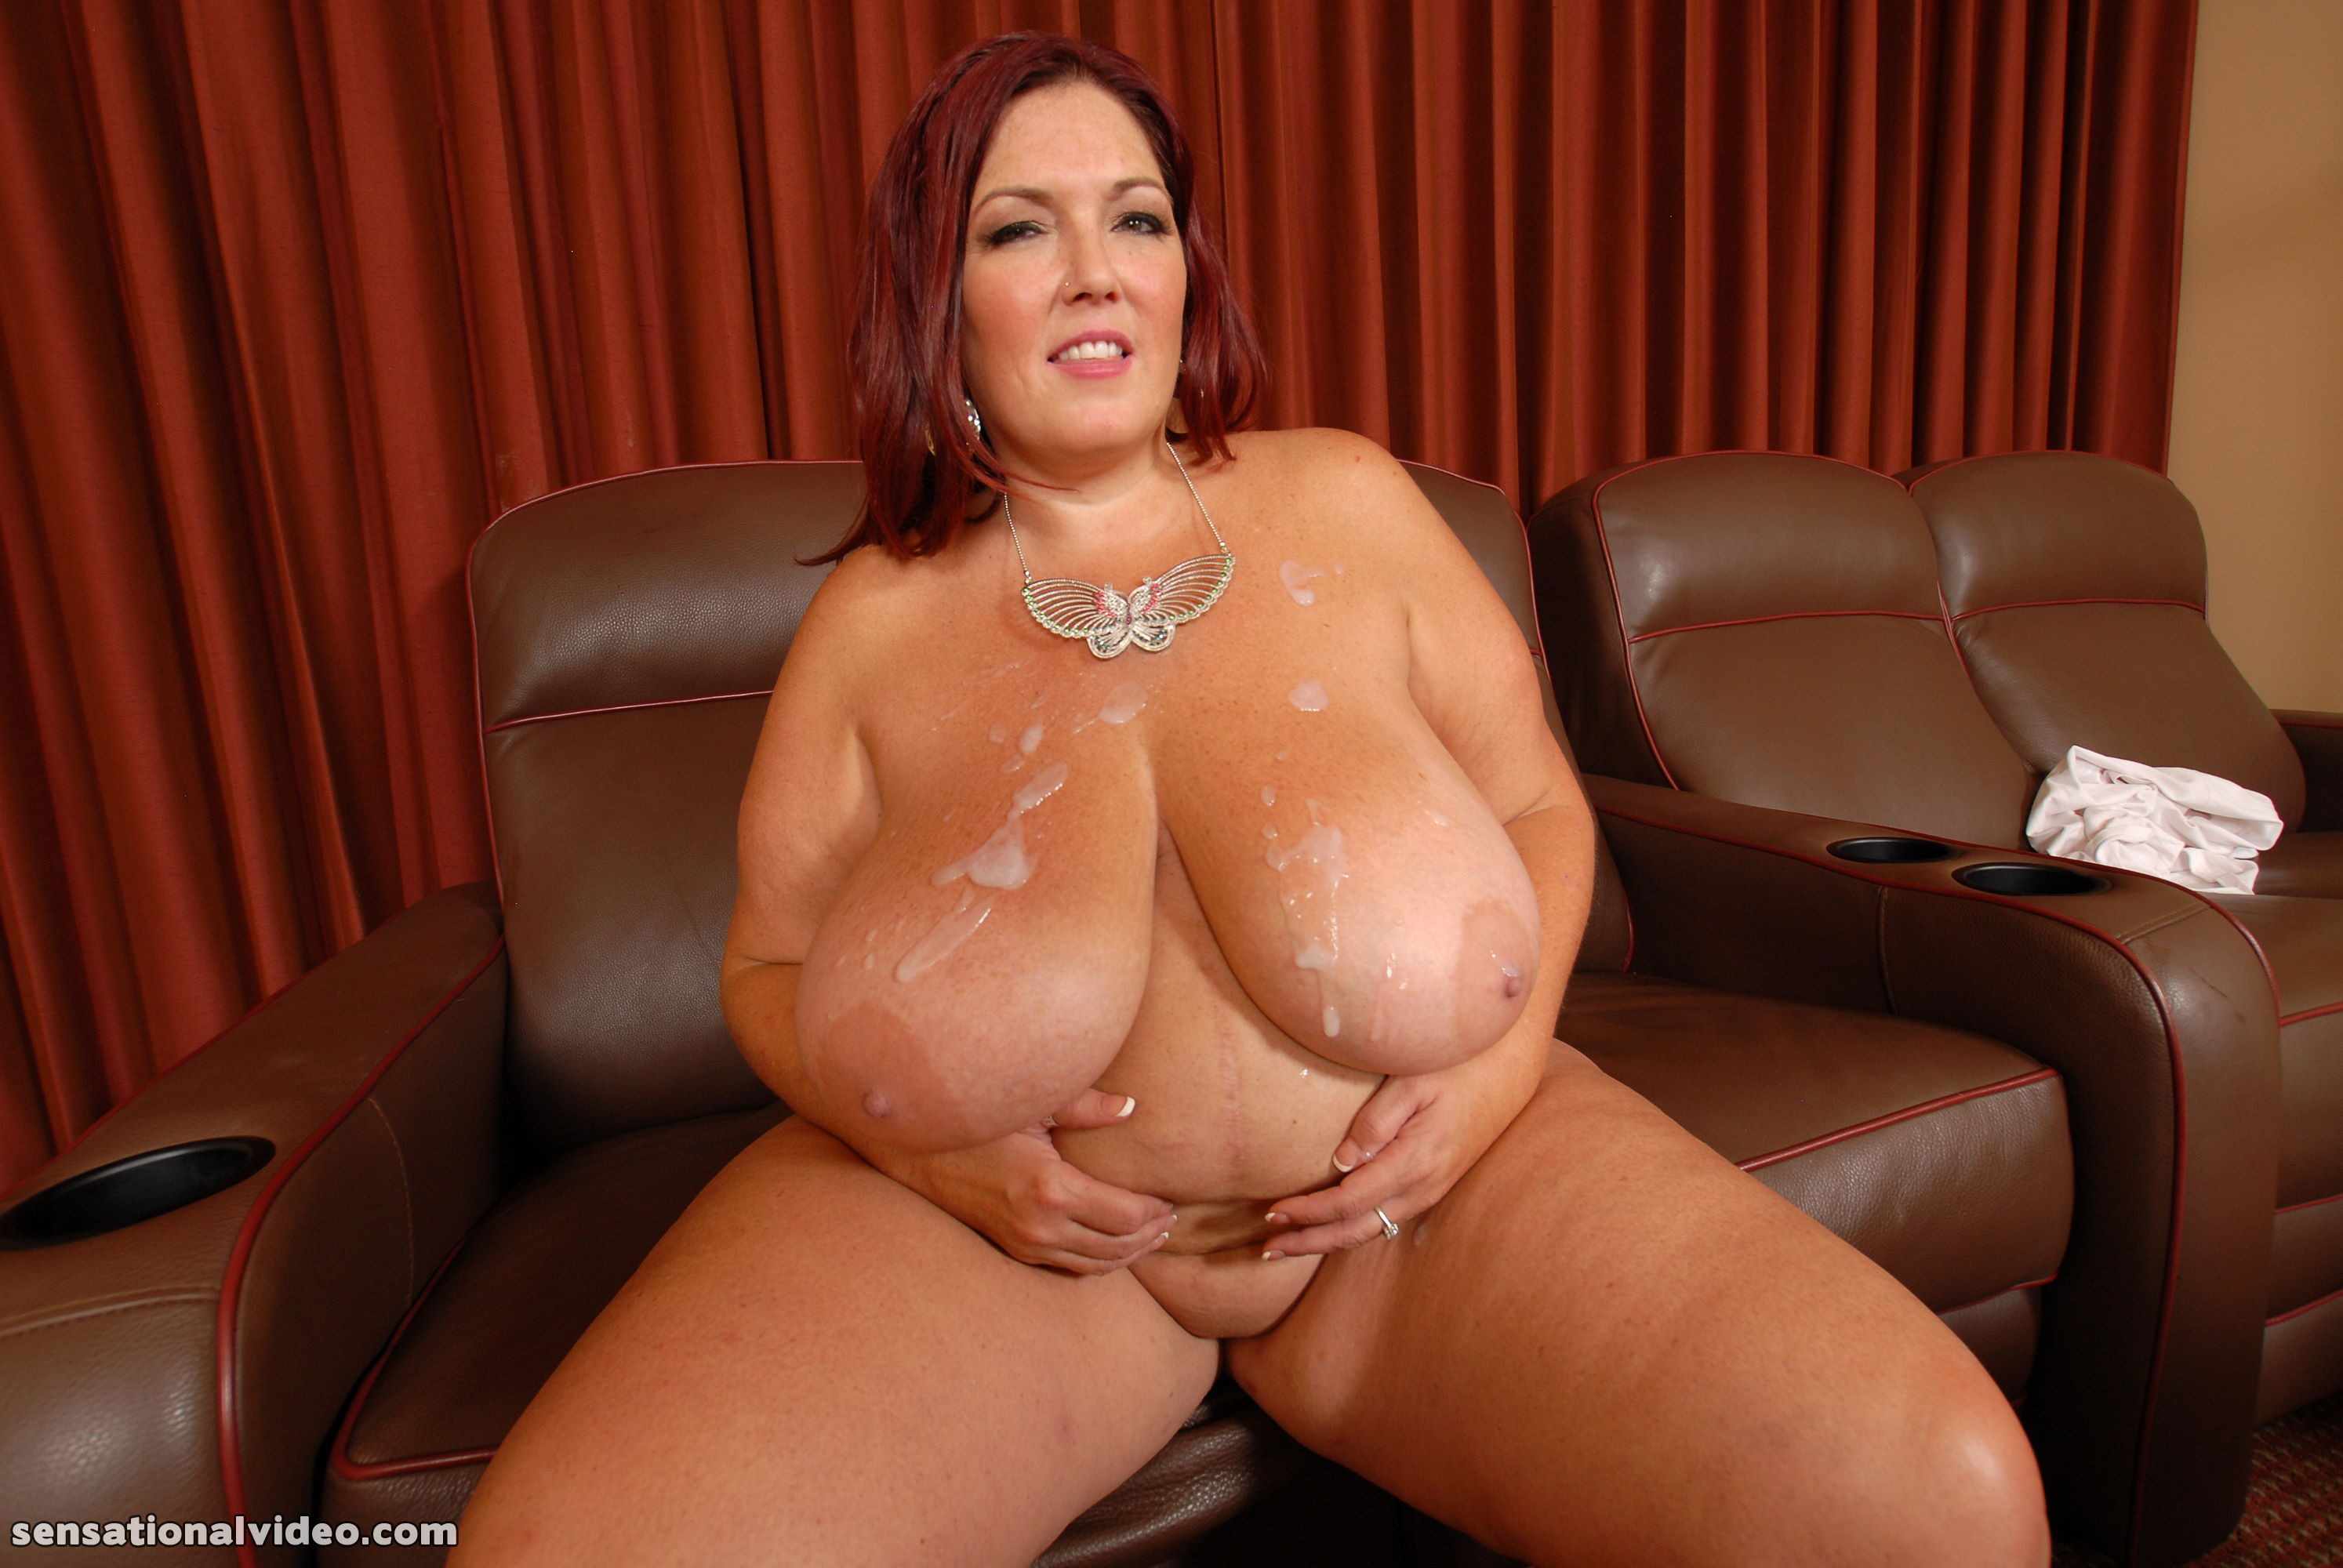 Bbw Squirt Porn peaches laure busty milf - jizz on bbw laure juggs. bbw porn